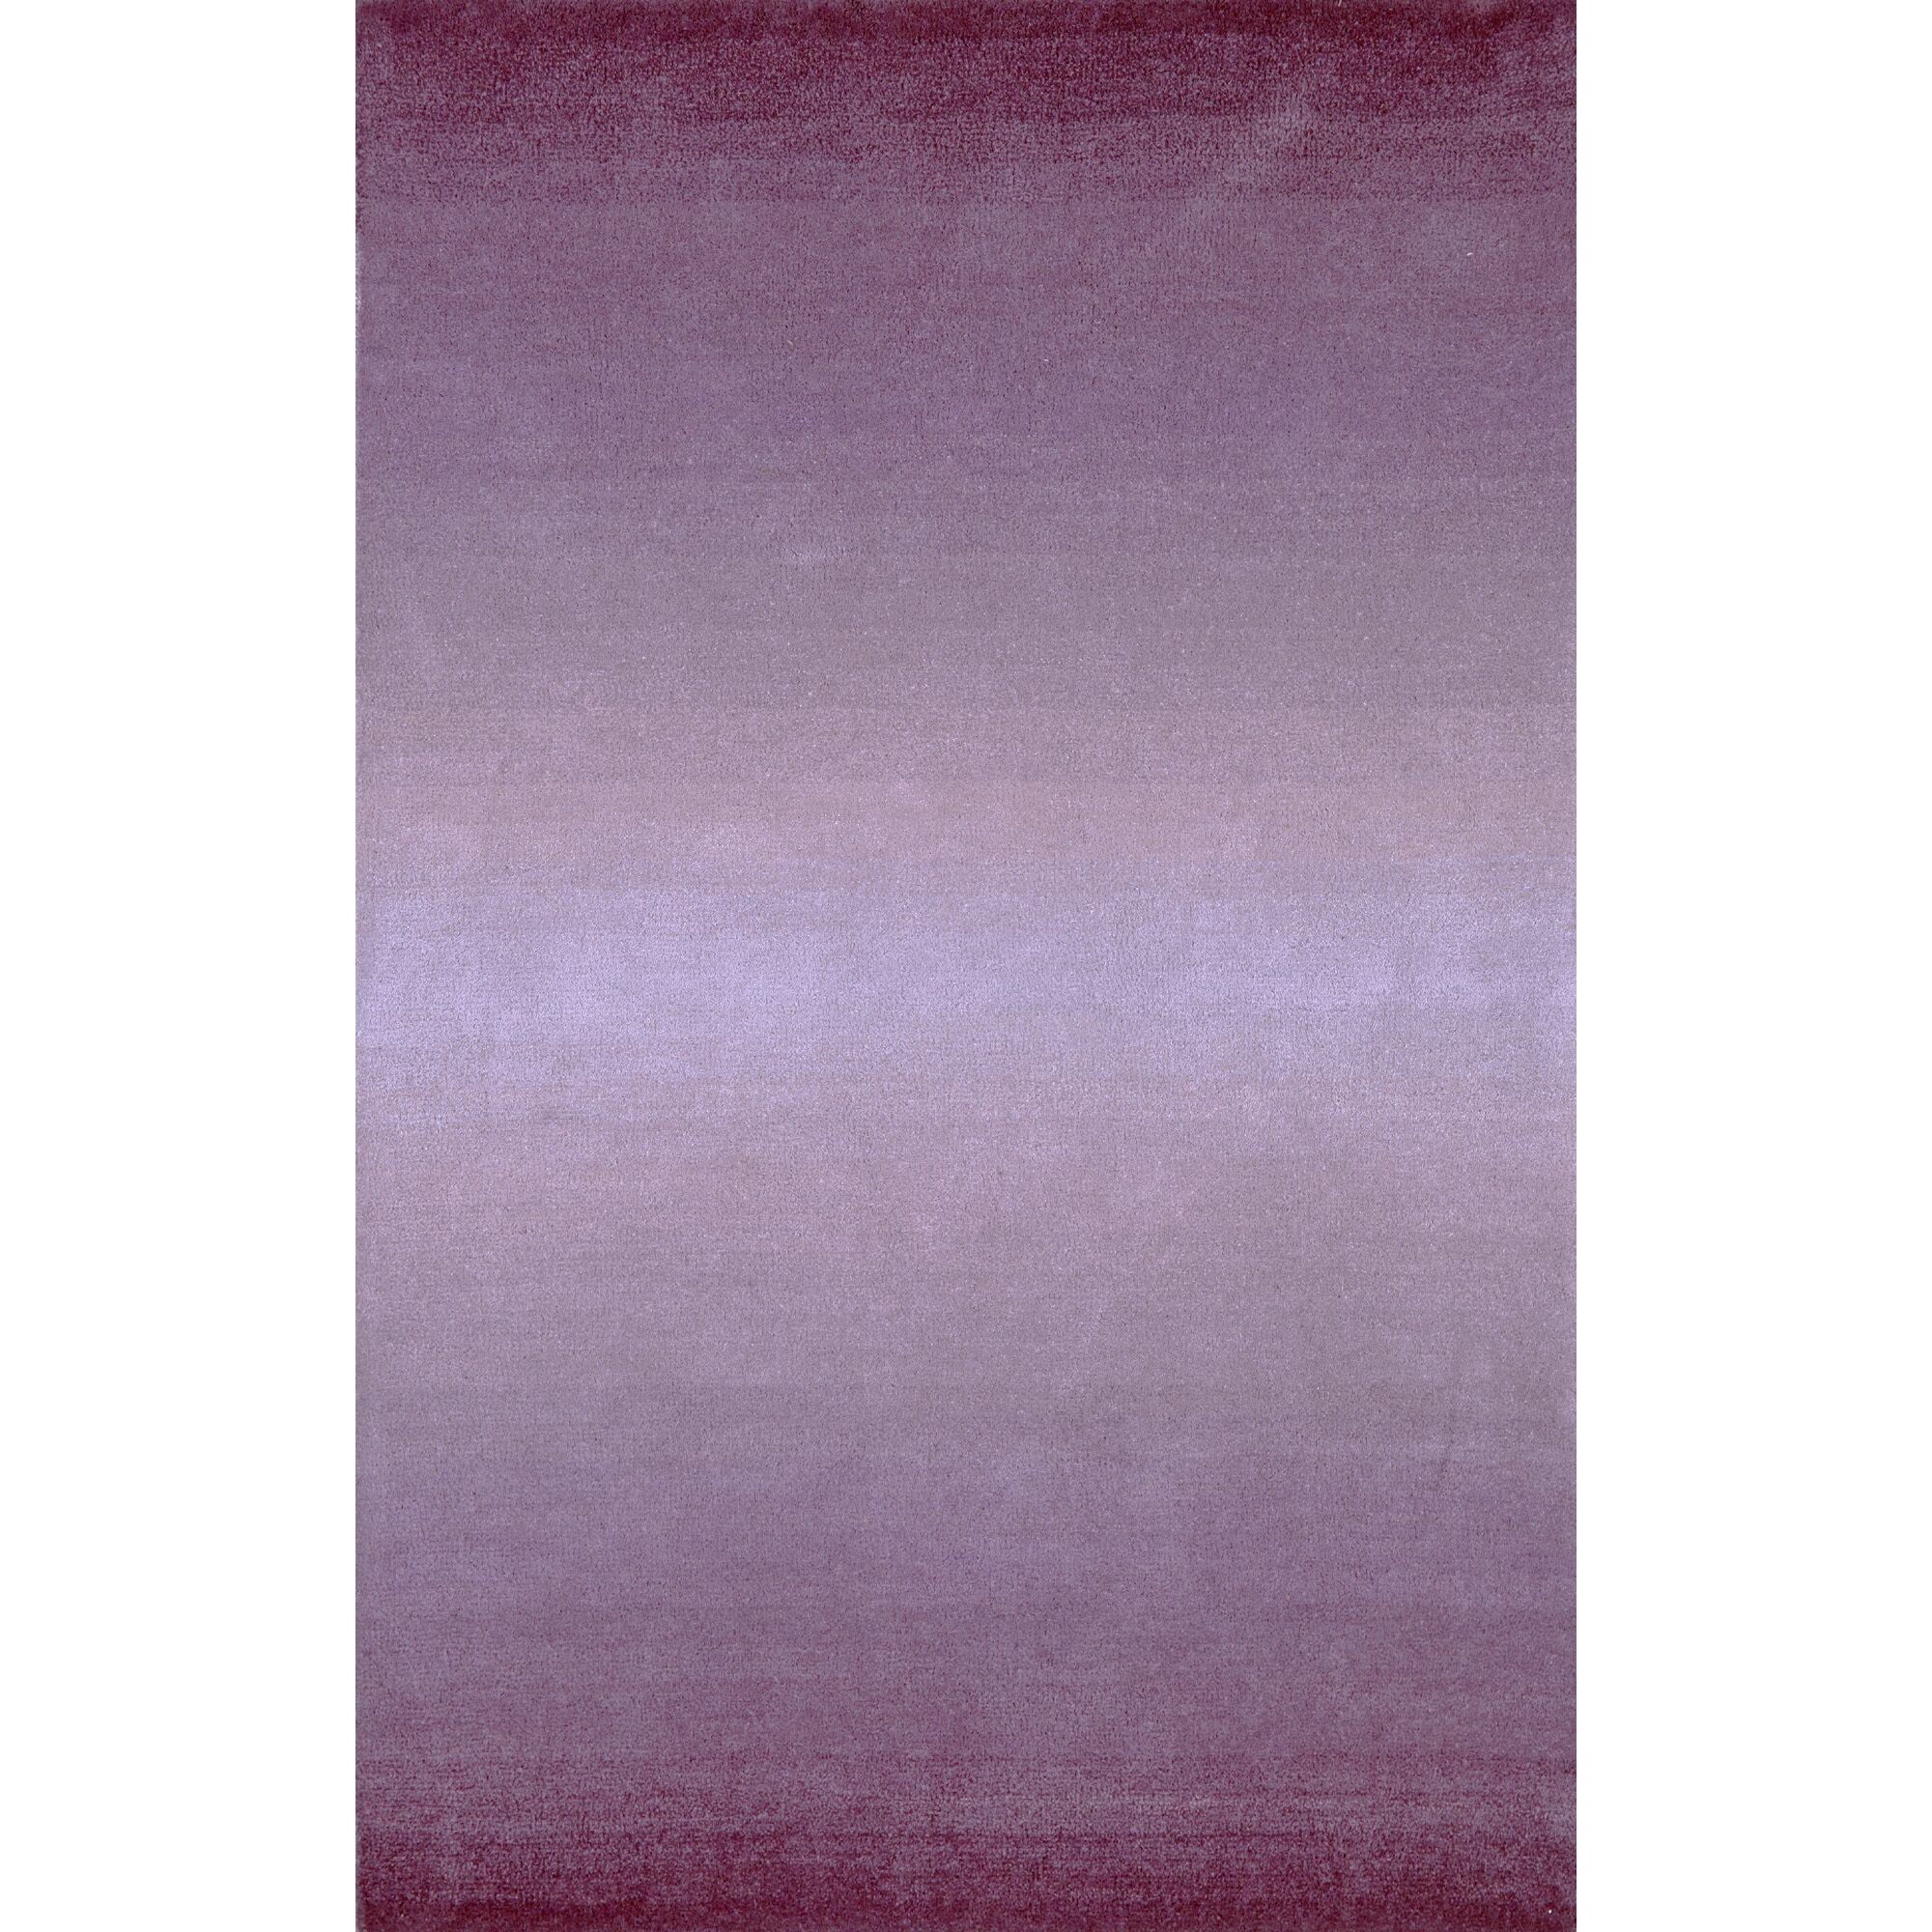 Belding Hand-Tufted Wool Purple Area Rug Rug Size: Rectangle 6'x 9'